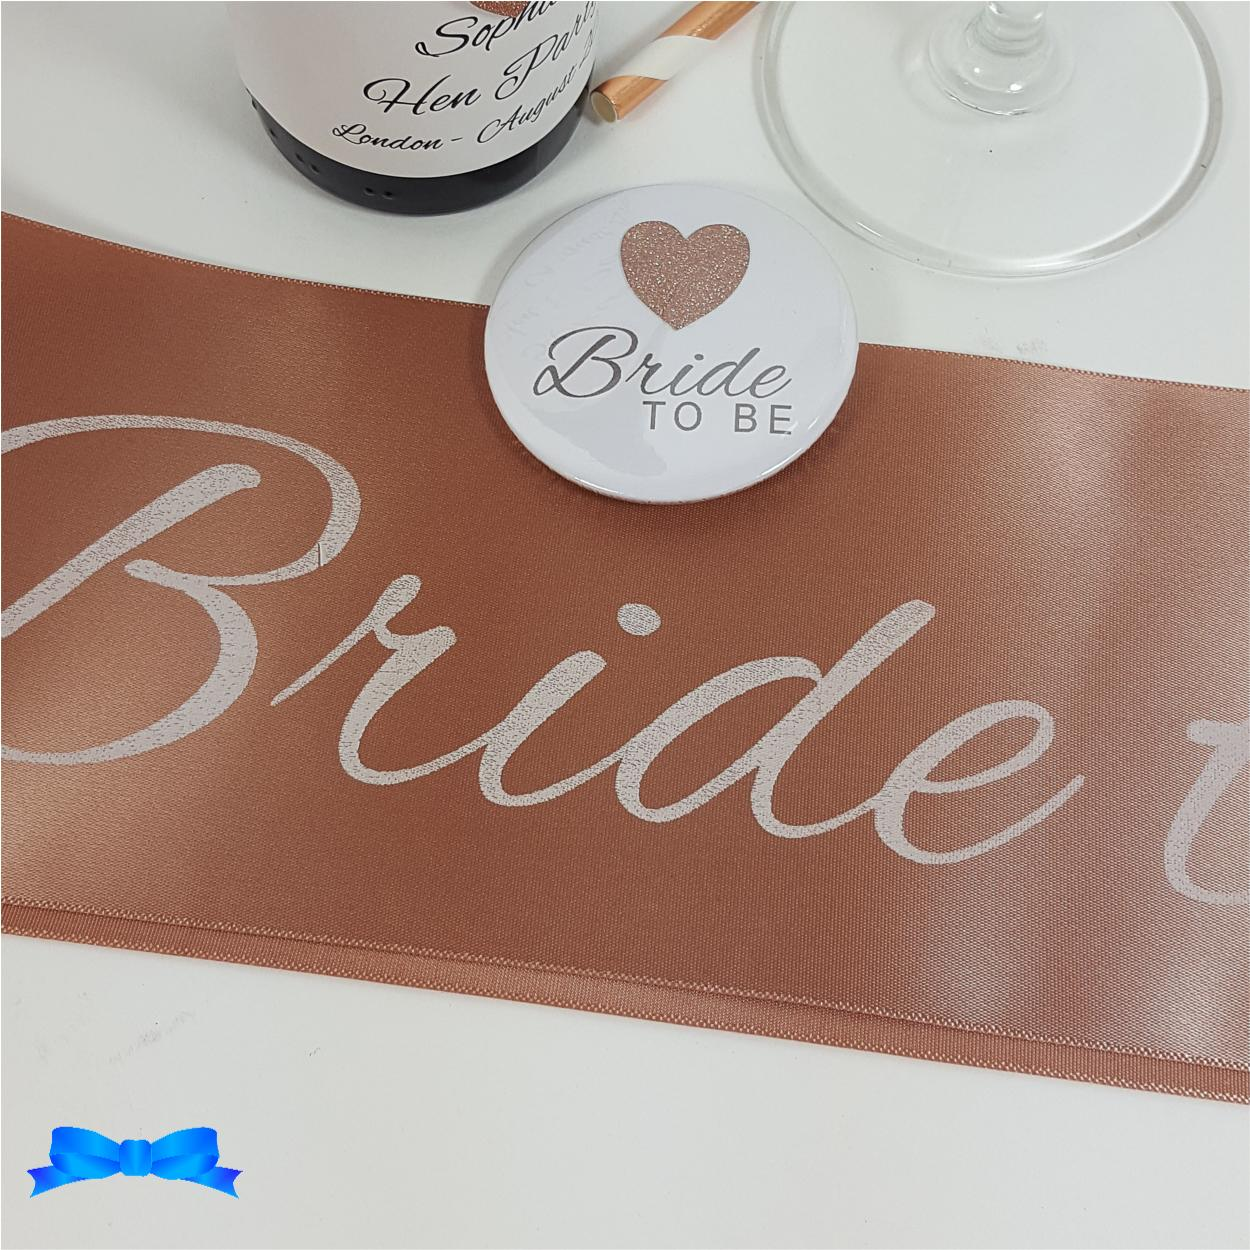 Rose gold Bride to be sash with white text